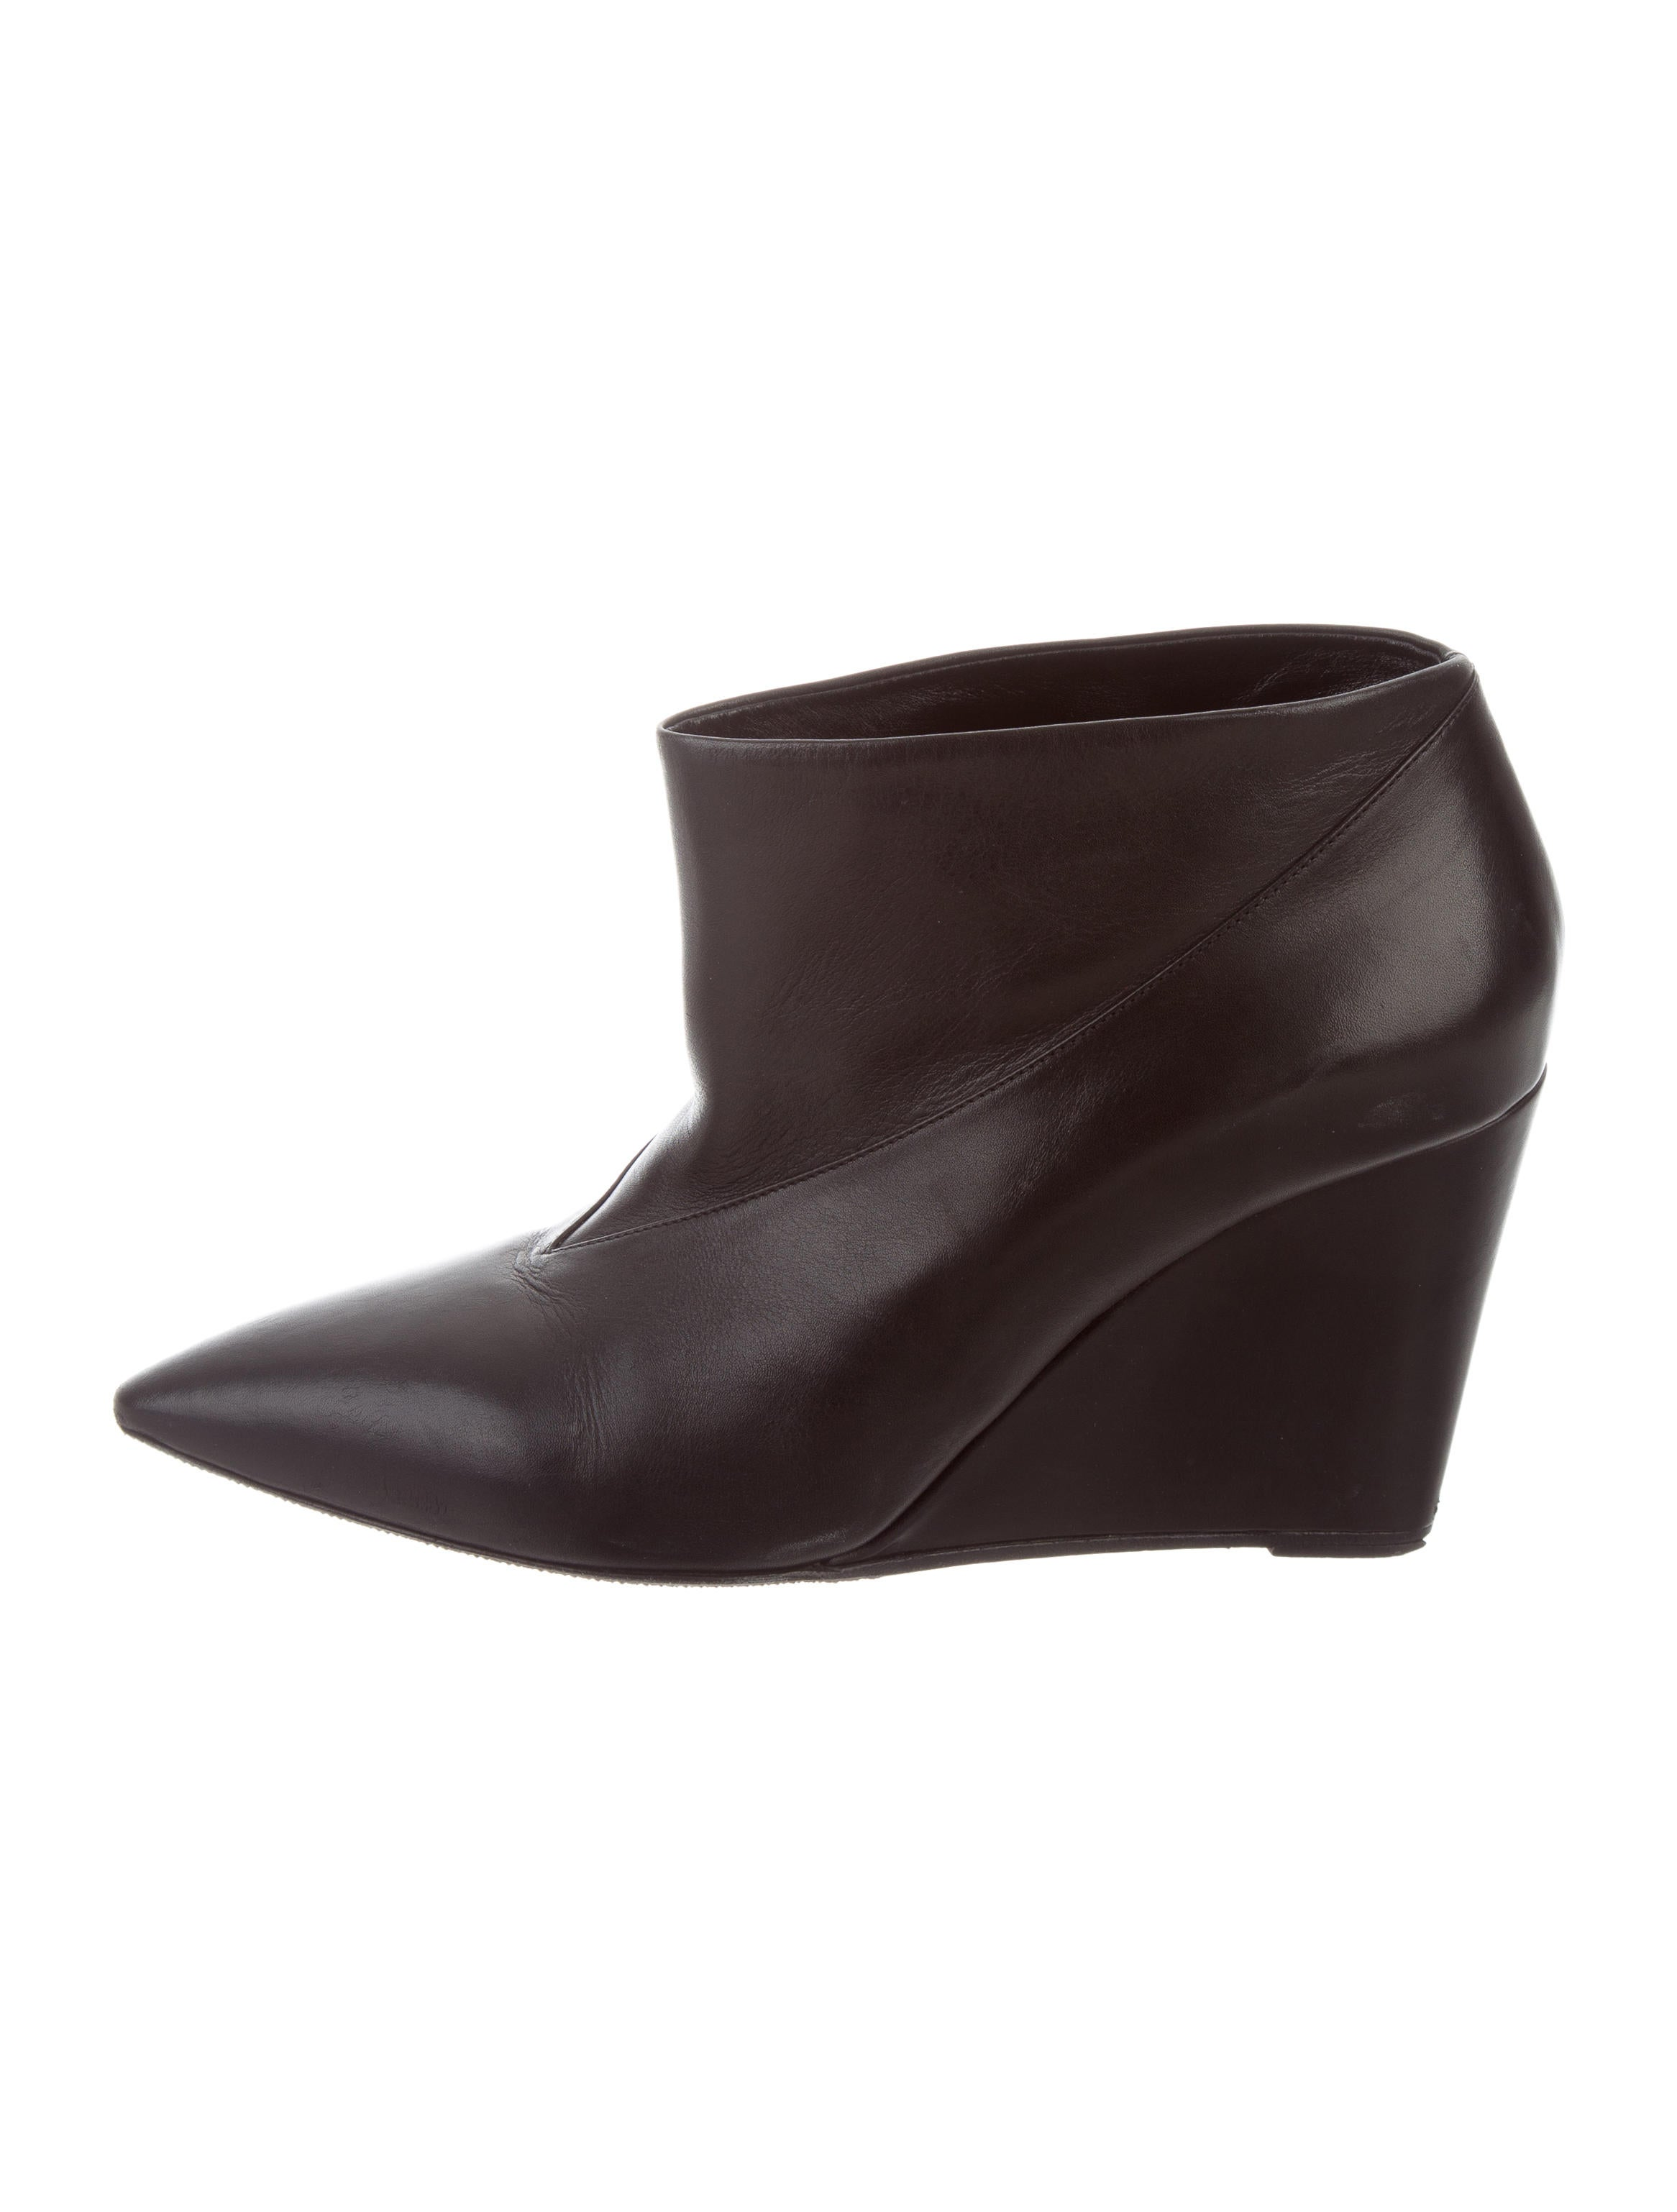 herm 232 s leather wedge ankle boots shoes her109891 the